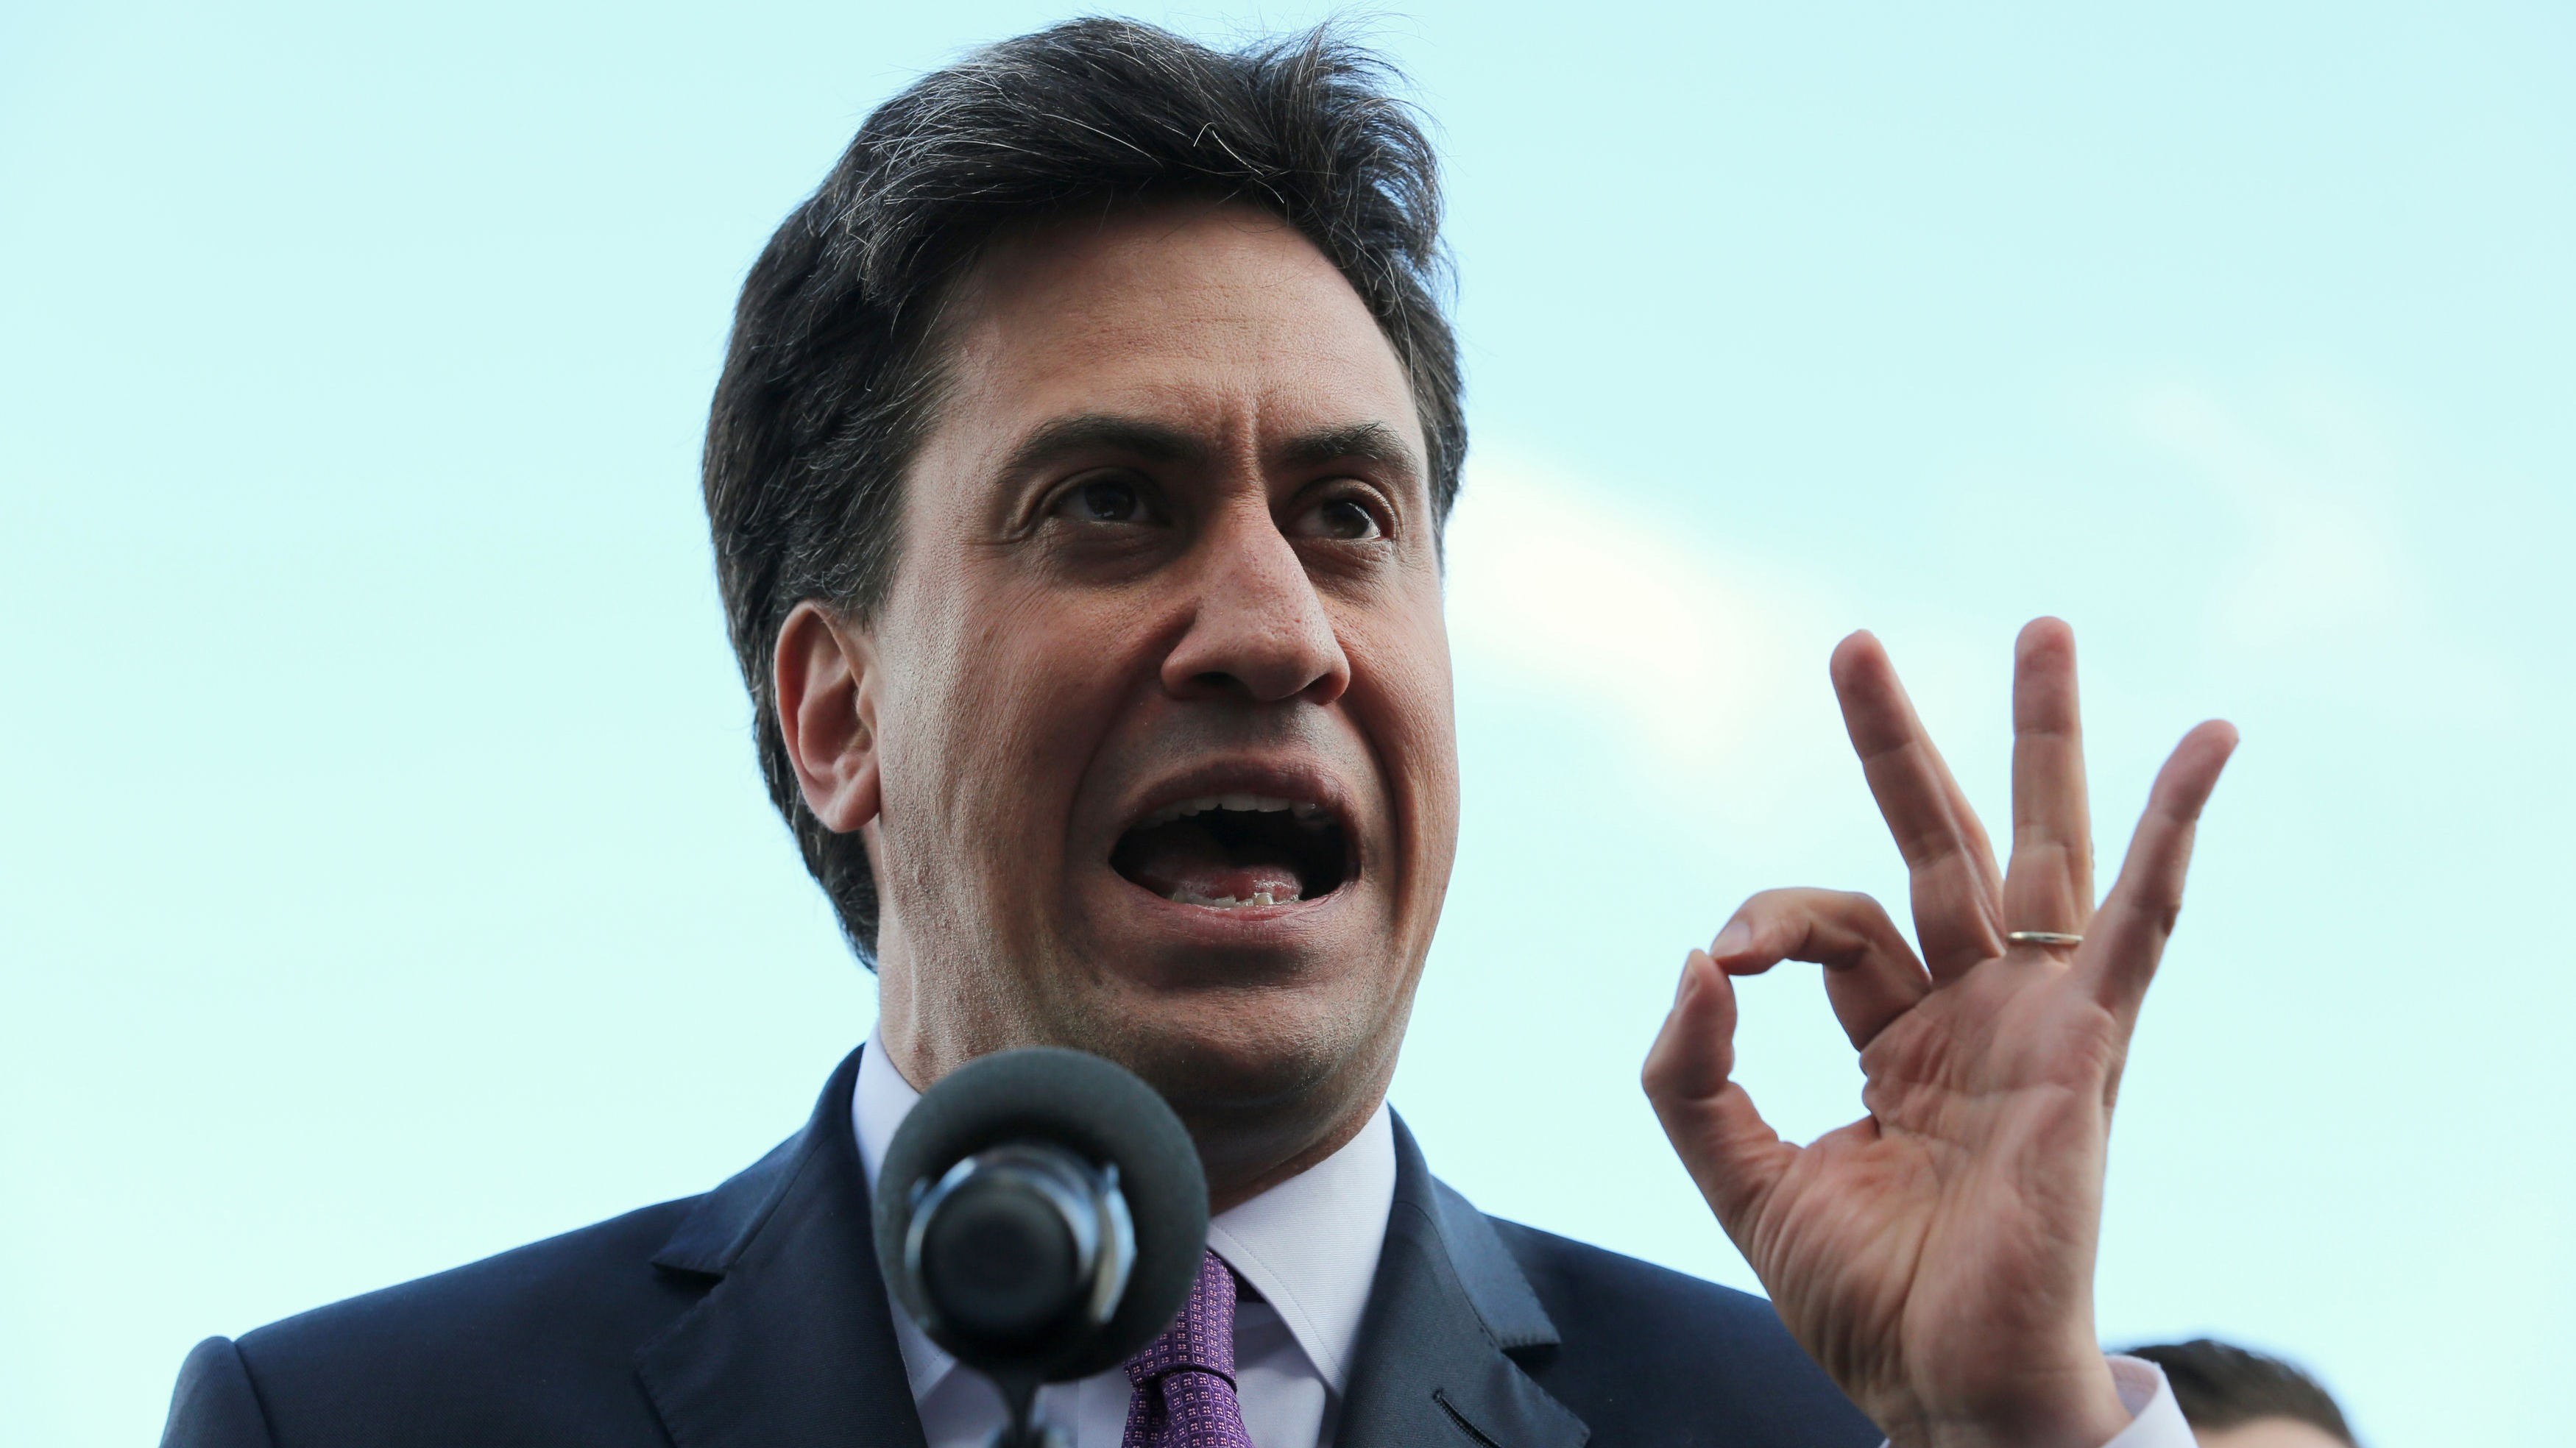 ed miliband fabian essay The term is gerard henderson's, from a 1983 essay in quadrant in which he claimed that employer groups,  uk labour leader ed miliband fabian society.